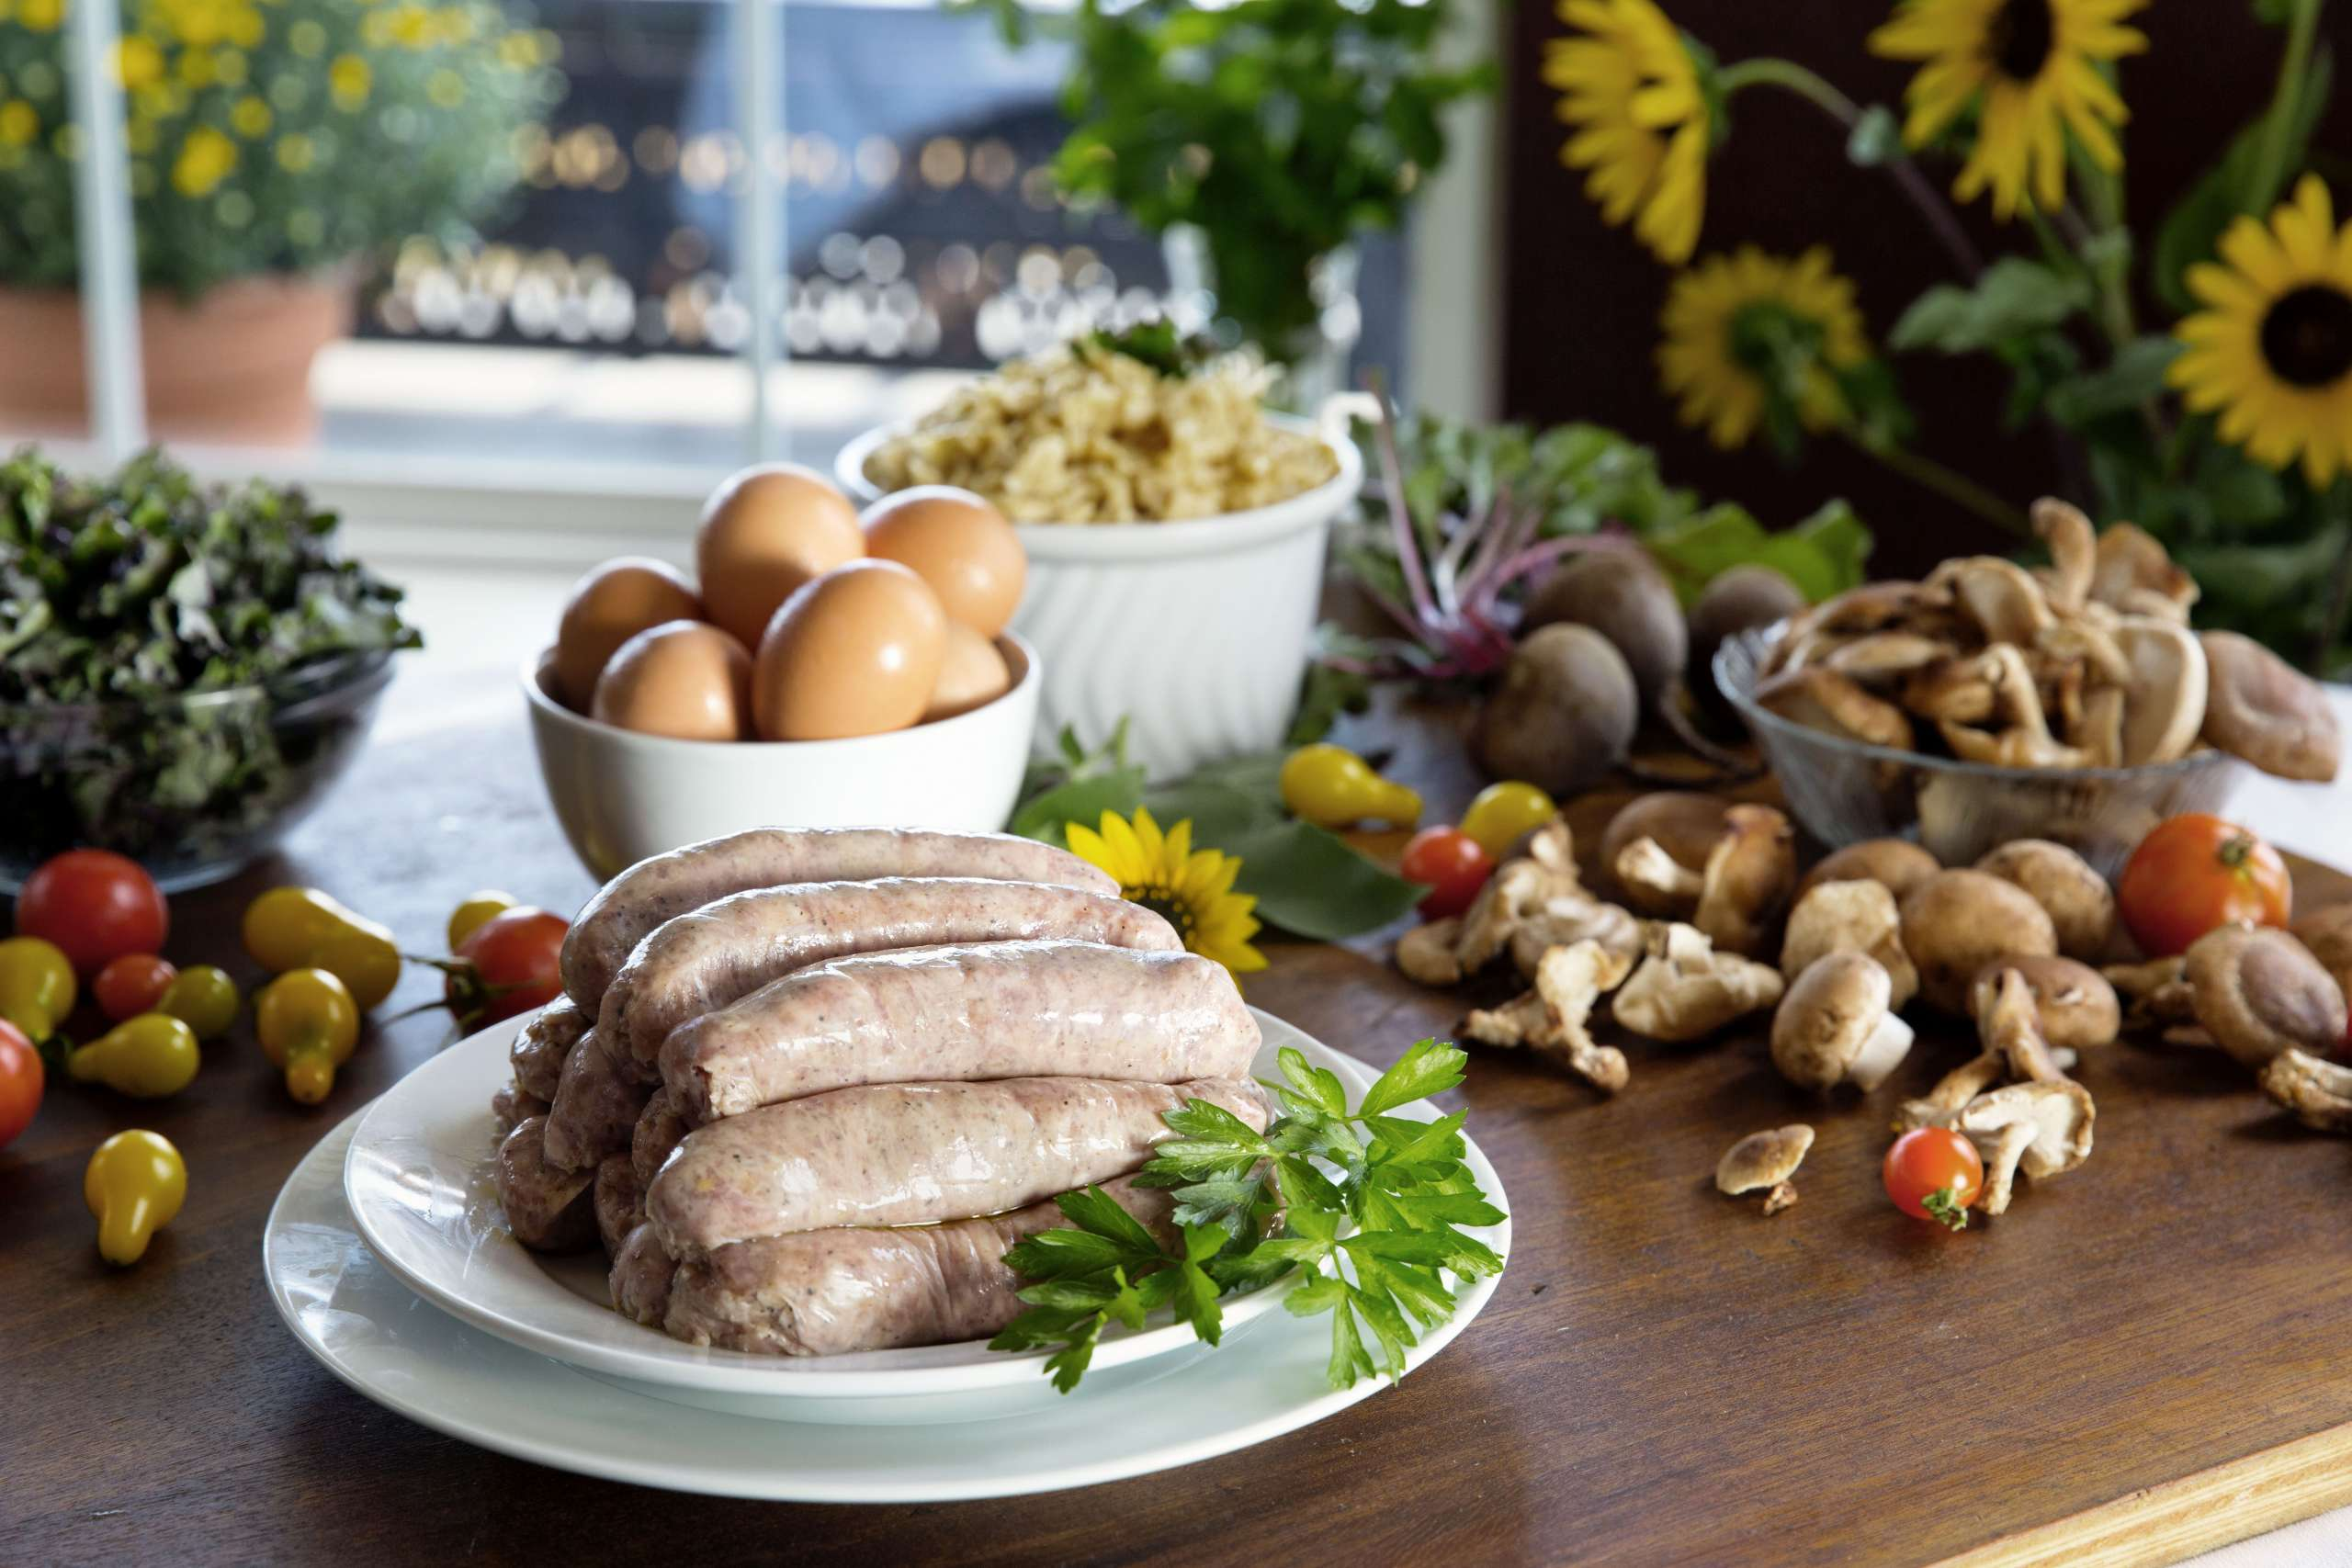 Plate with a stack of sausage on a wooden table with a bowl of eggs behind them and vegetables scattered around them